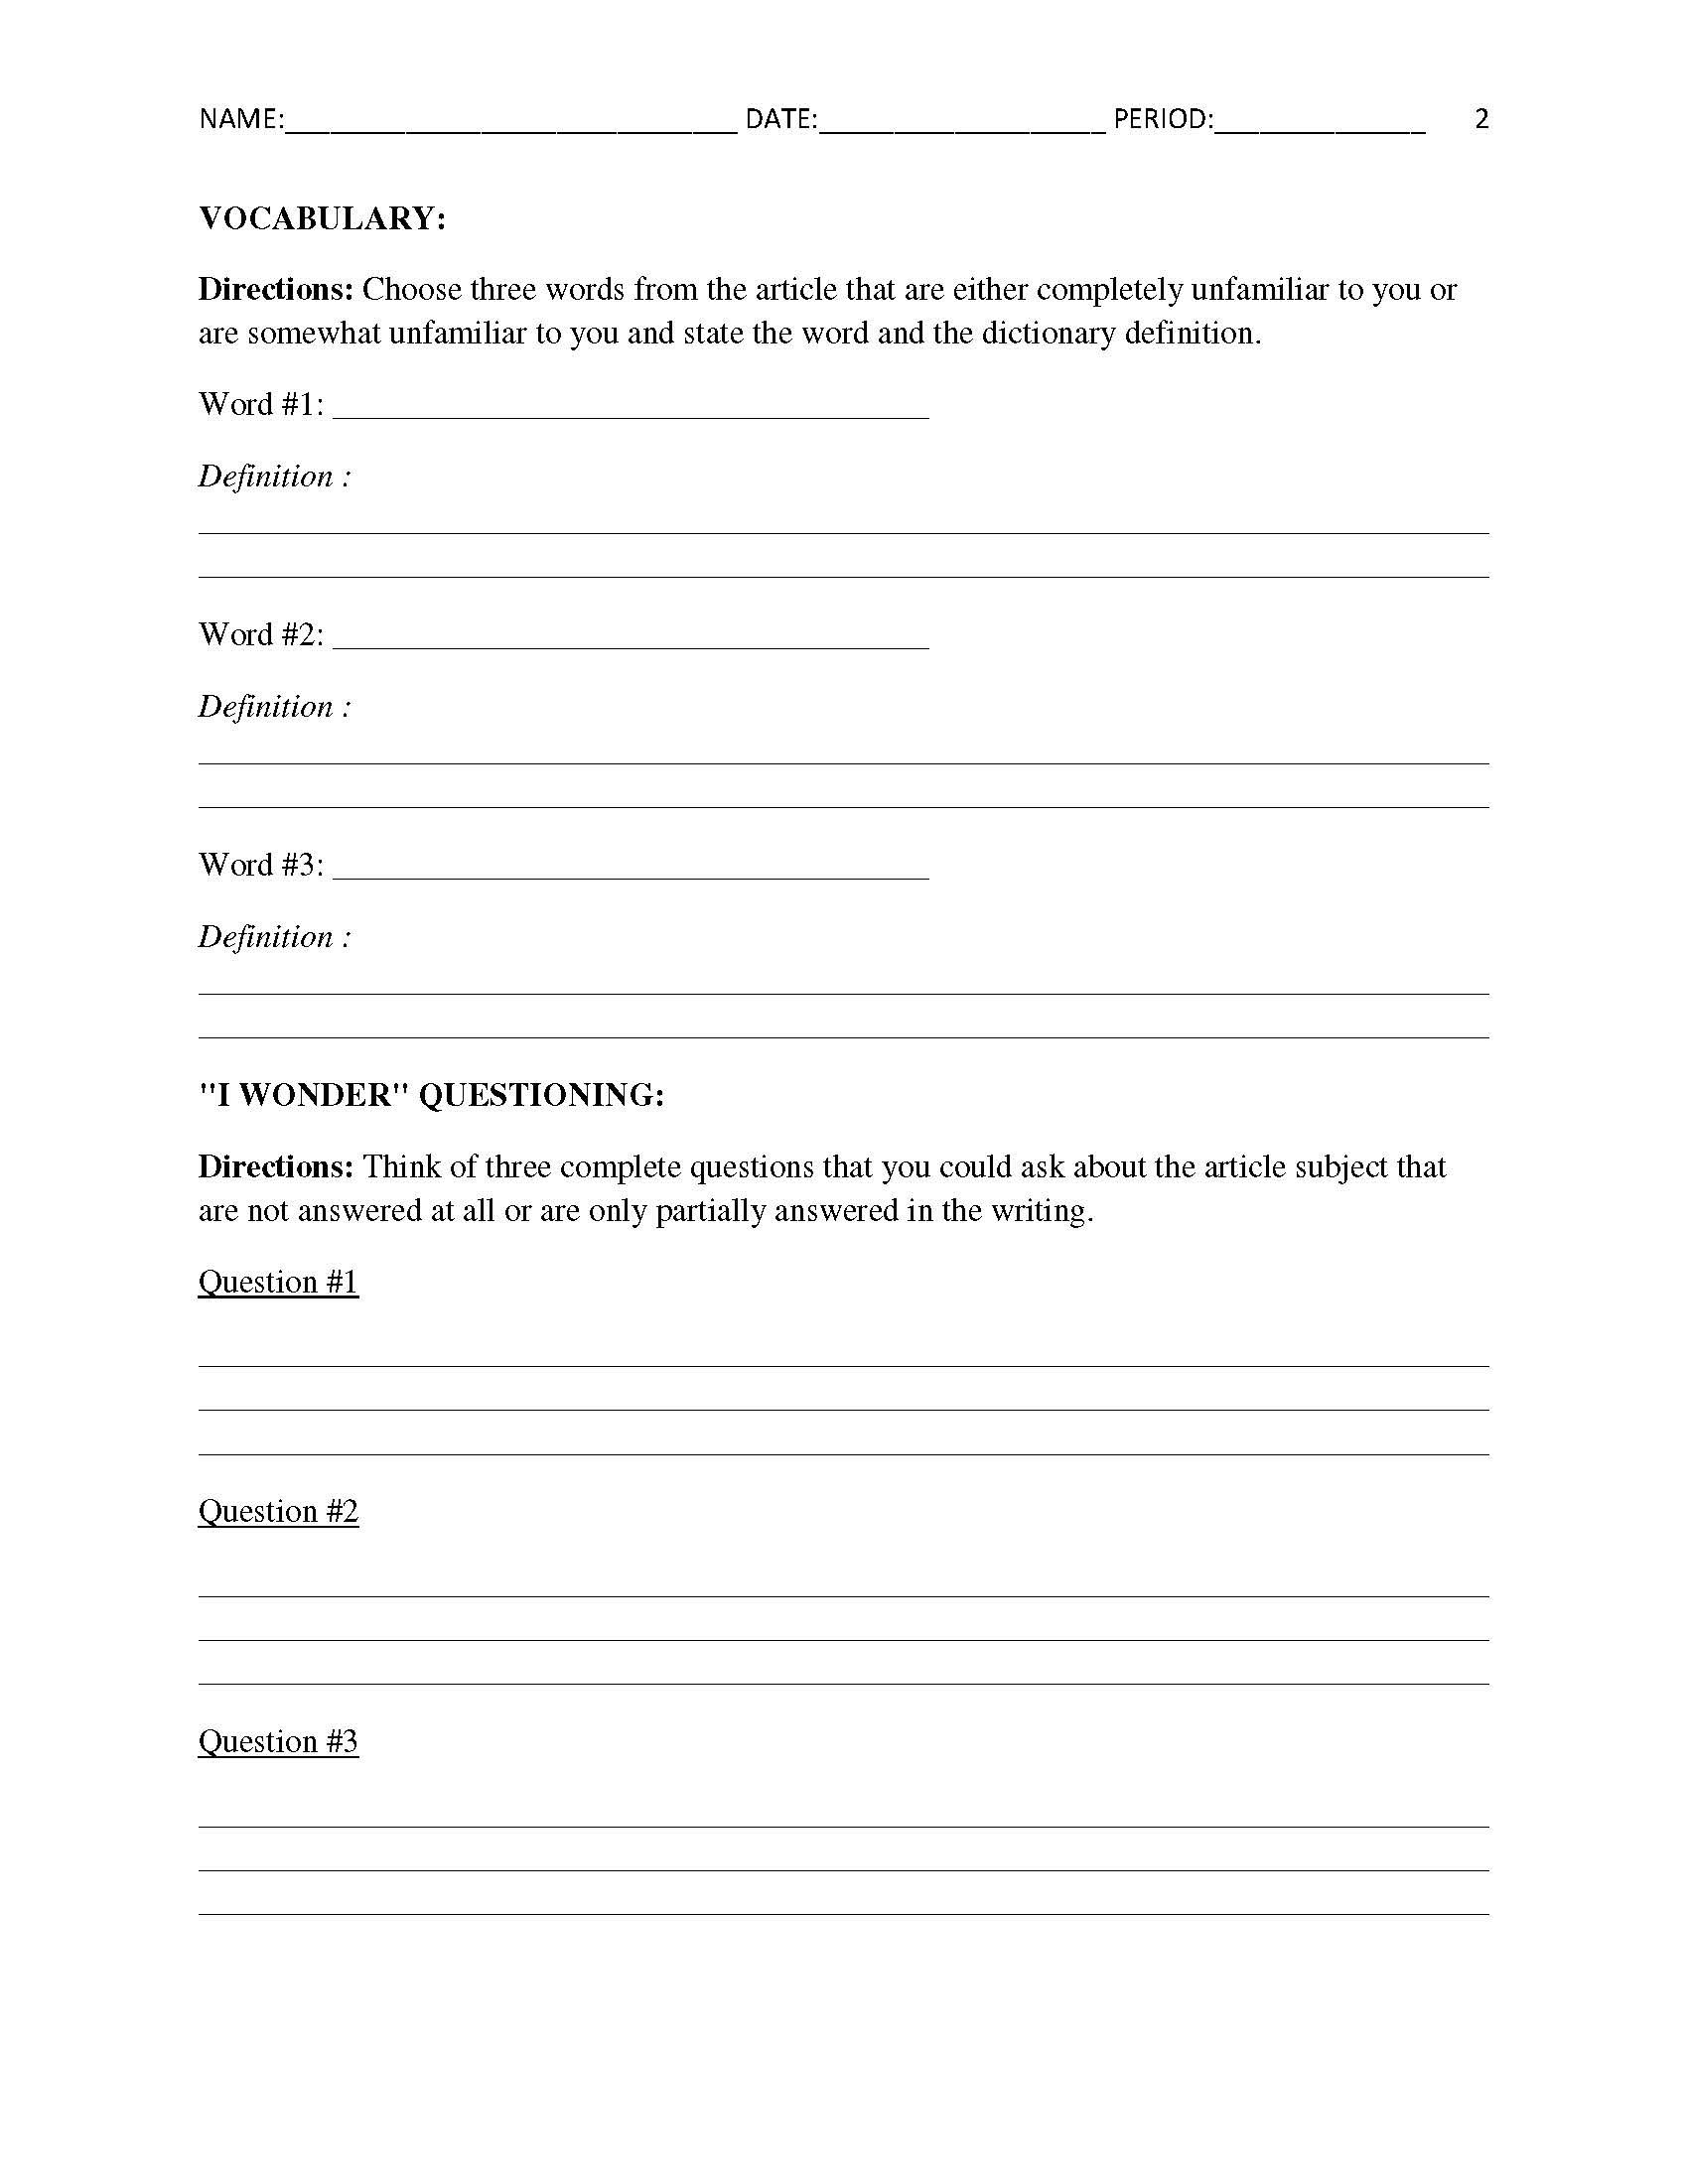 worksheet Current Events Worksheets free current events report worksheet for classroom teachers teachers